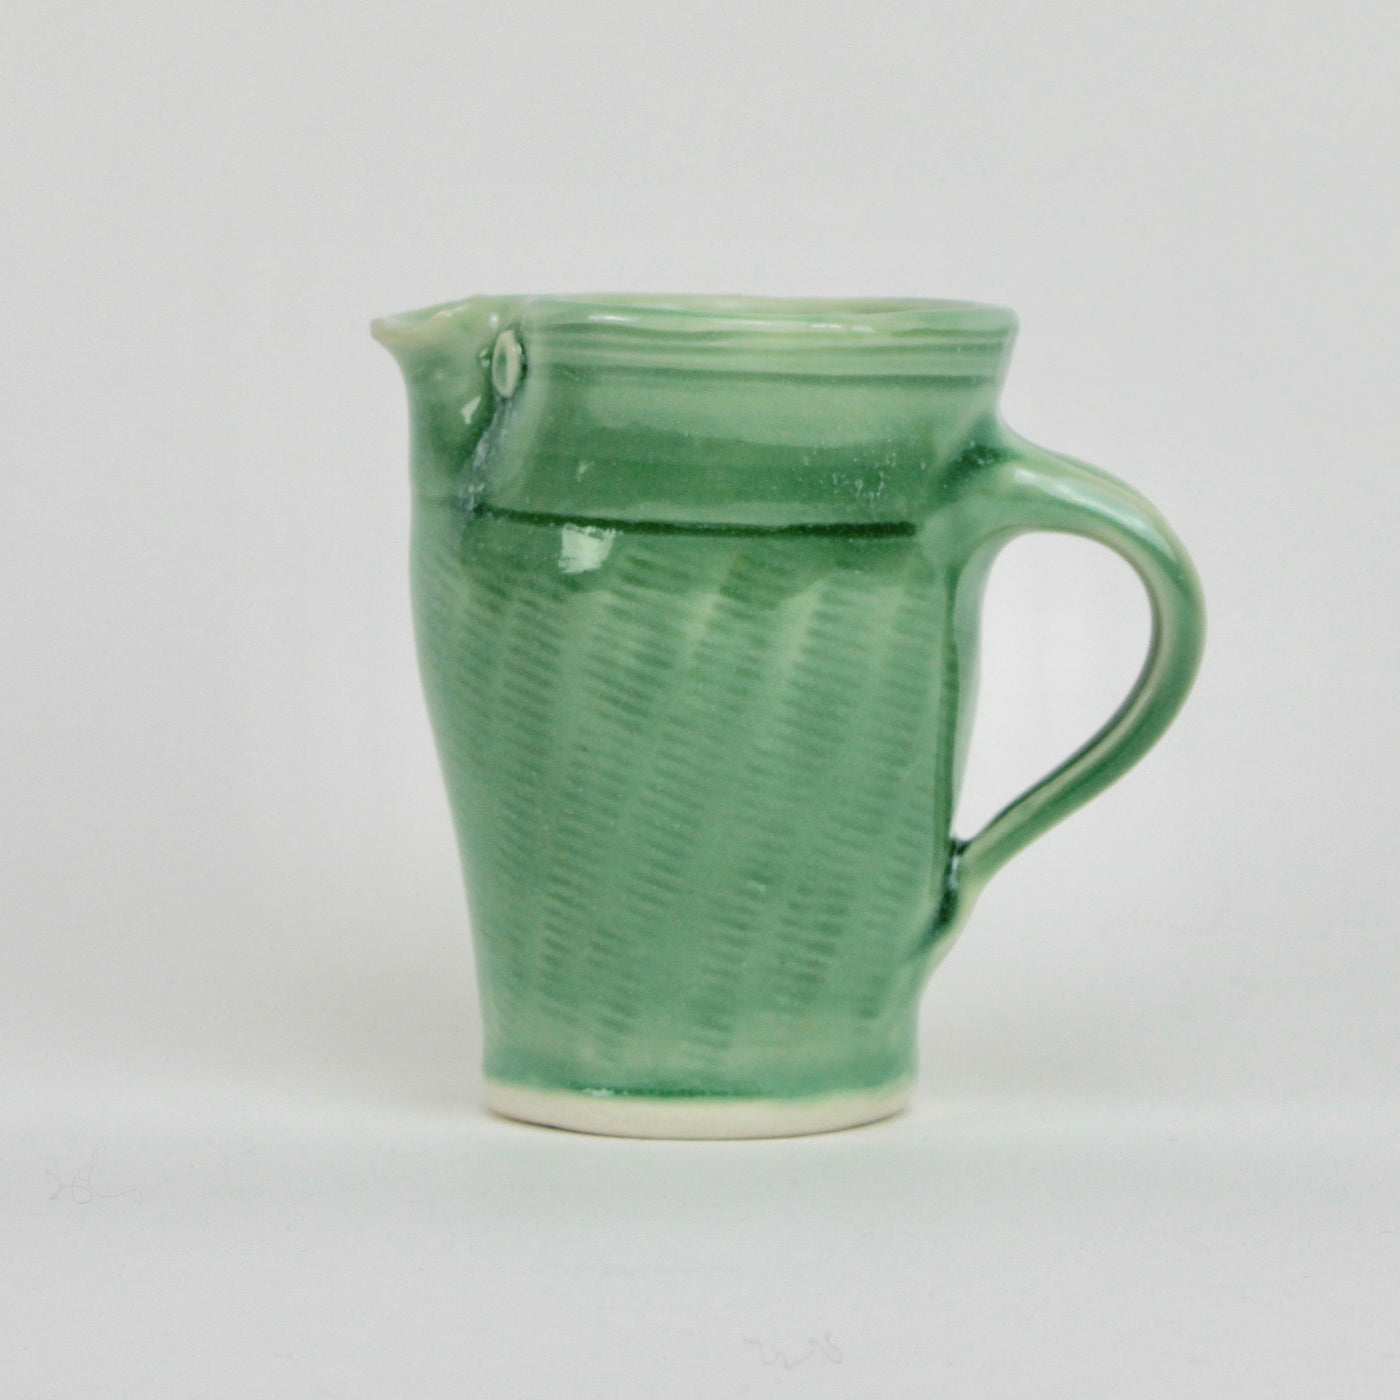 One pint jug - green